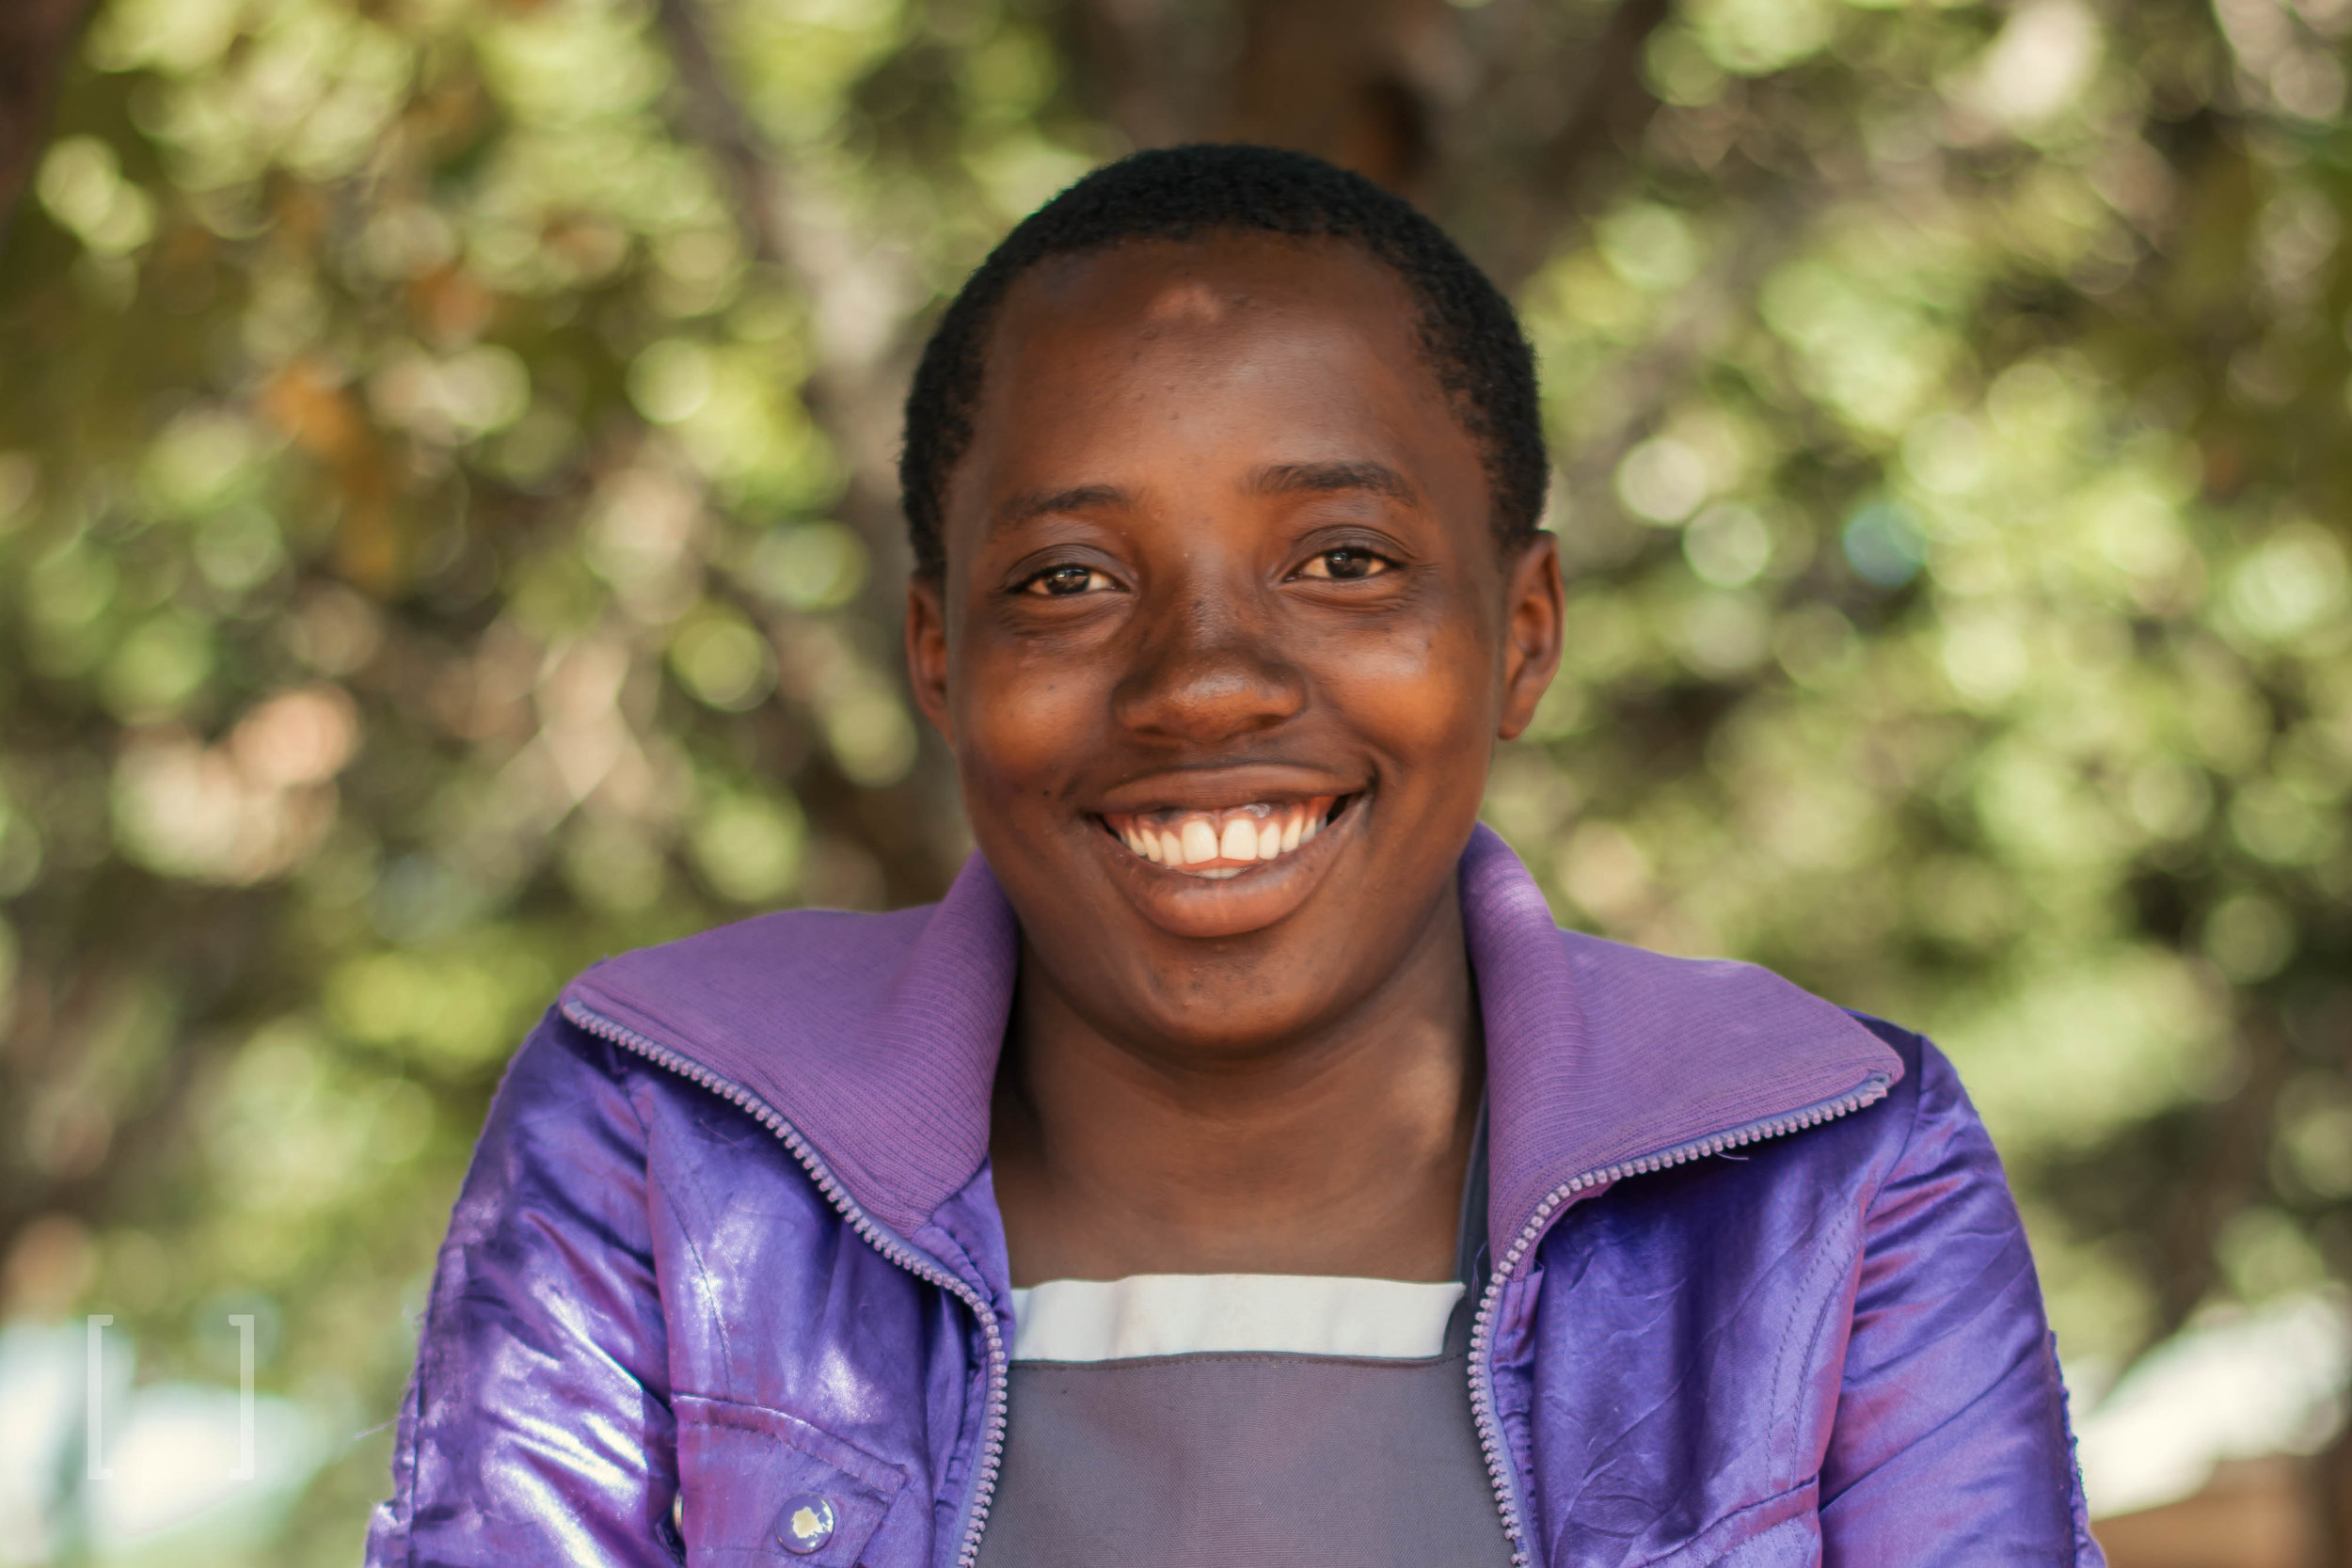 Loveness - Loveness is a twin! She likes playing netball and wishes to play on the Malawi national team one day. Her favorite subject is social studies. She likes reading novels and chatting with friends during her free time. Sponsor her!